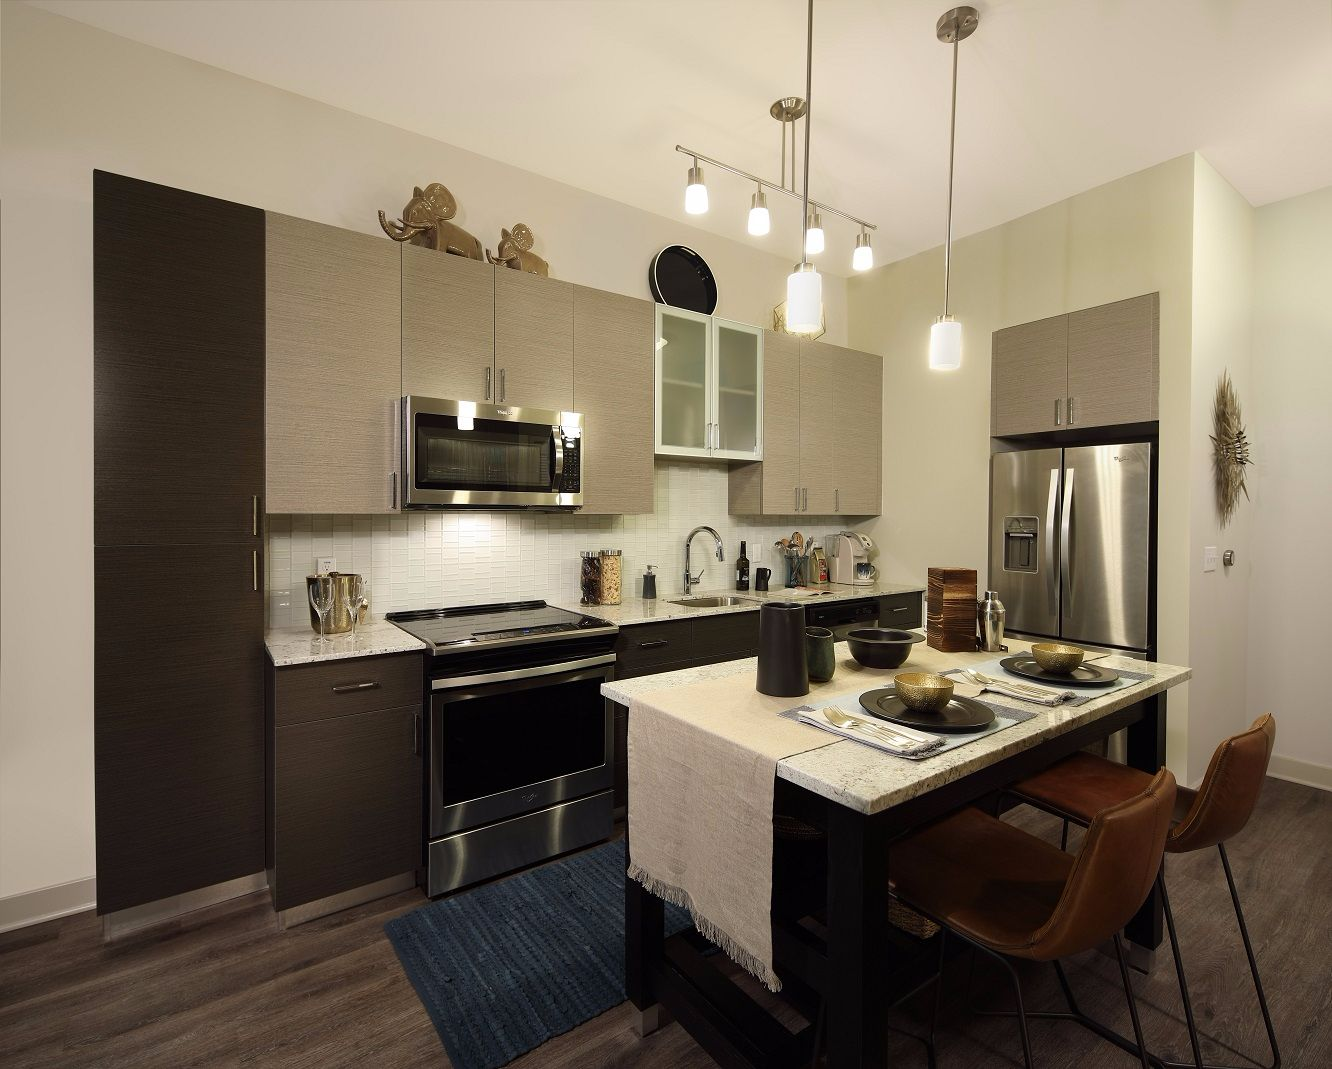 Apartment kitchen with island and pendant lighting